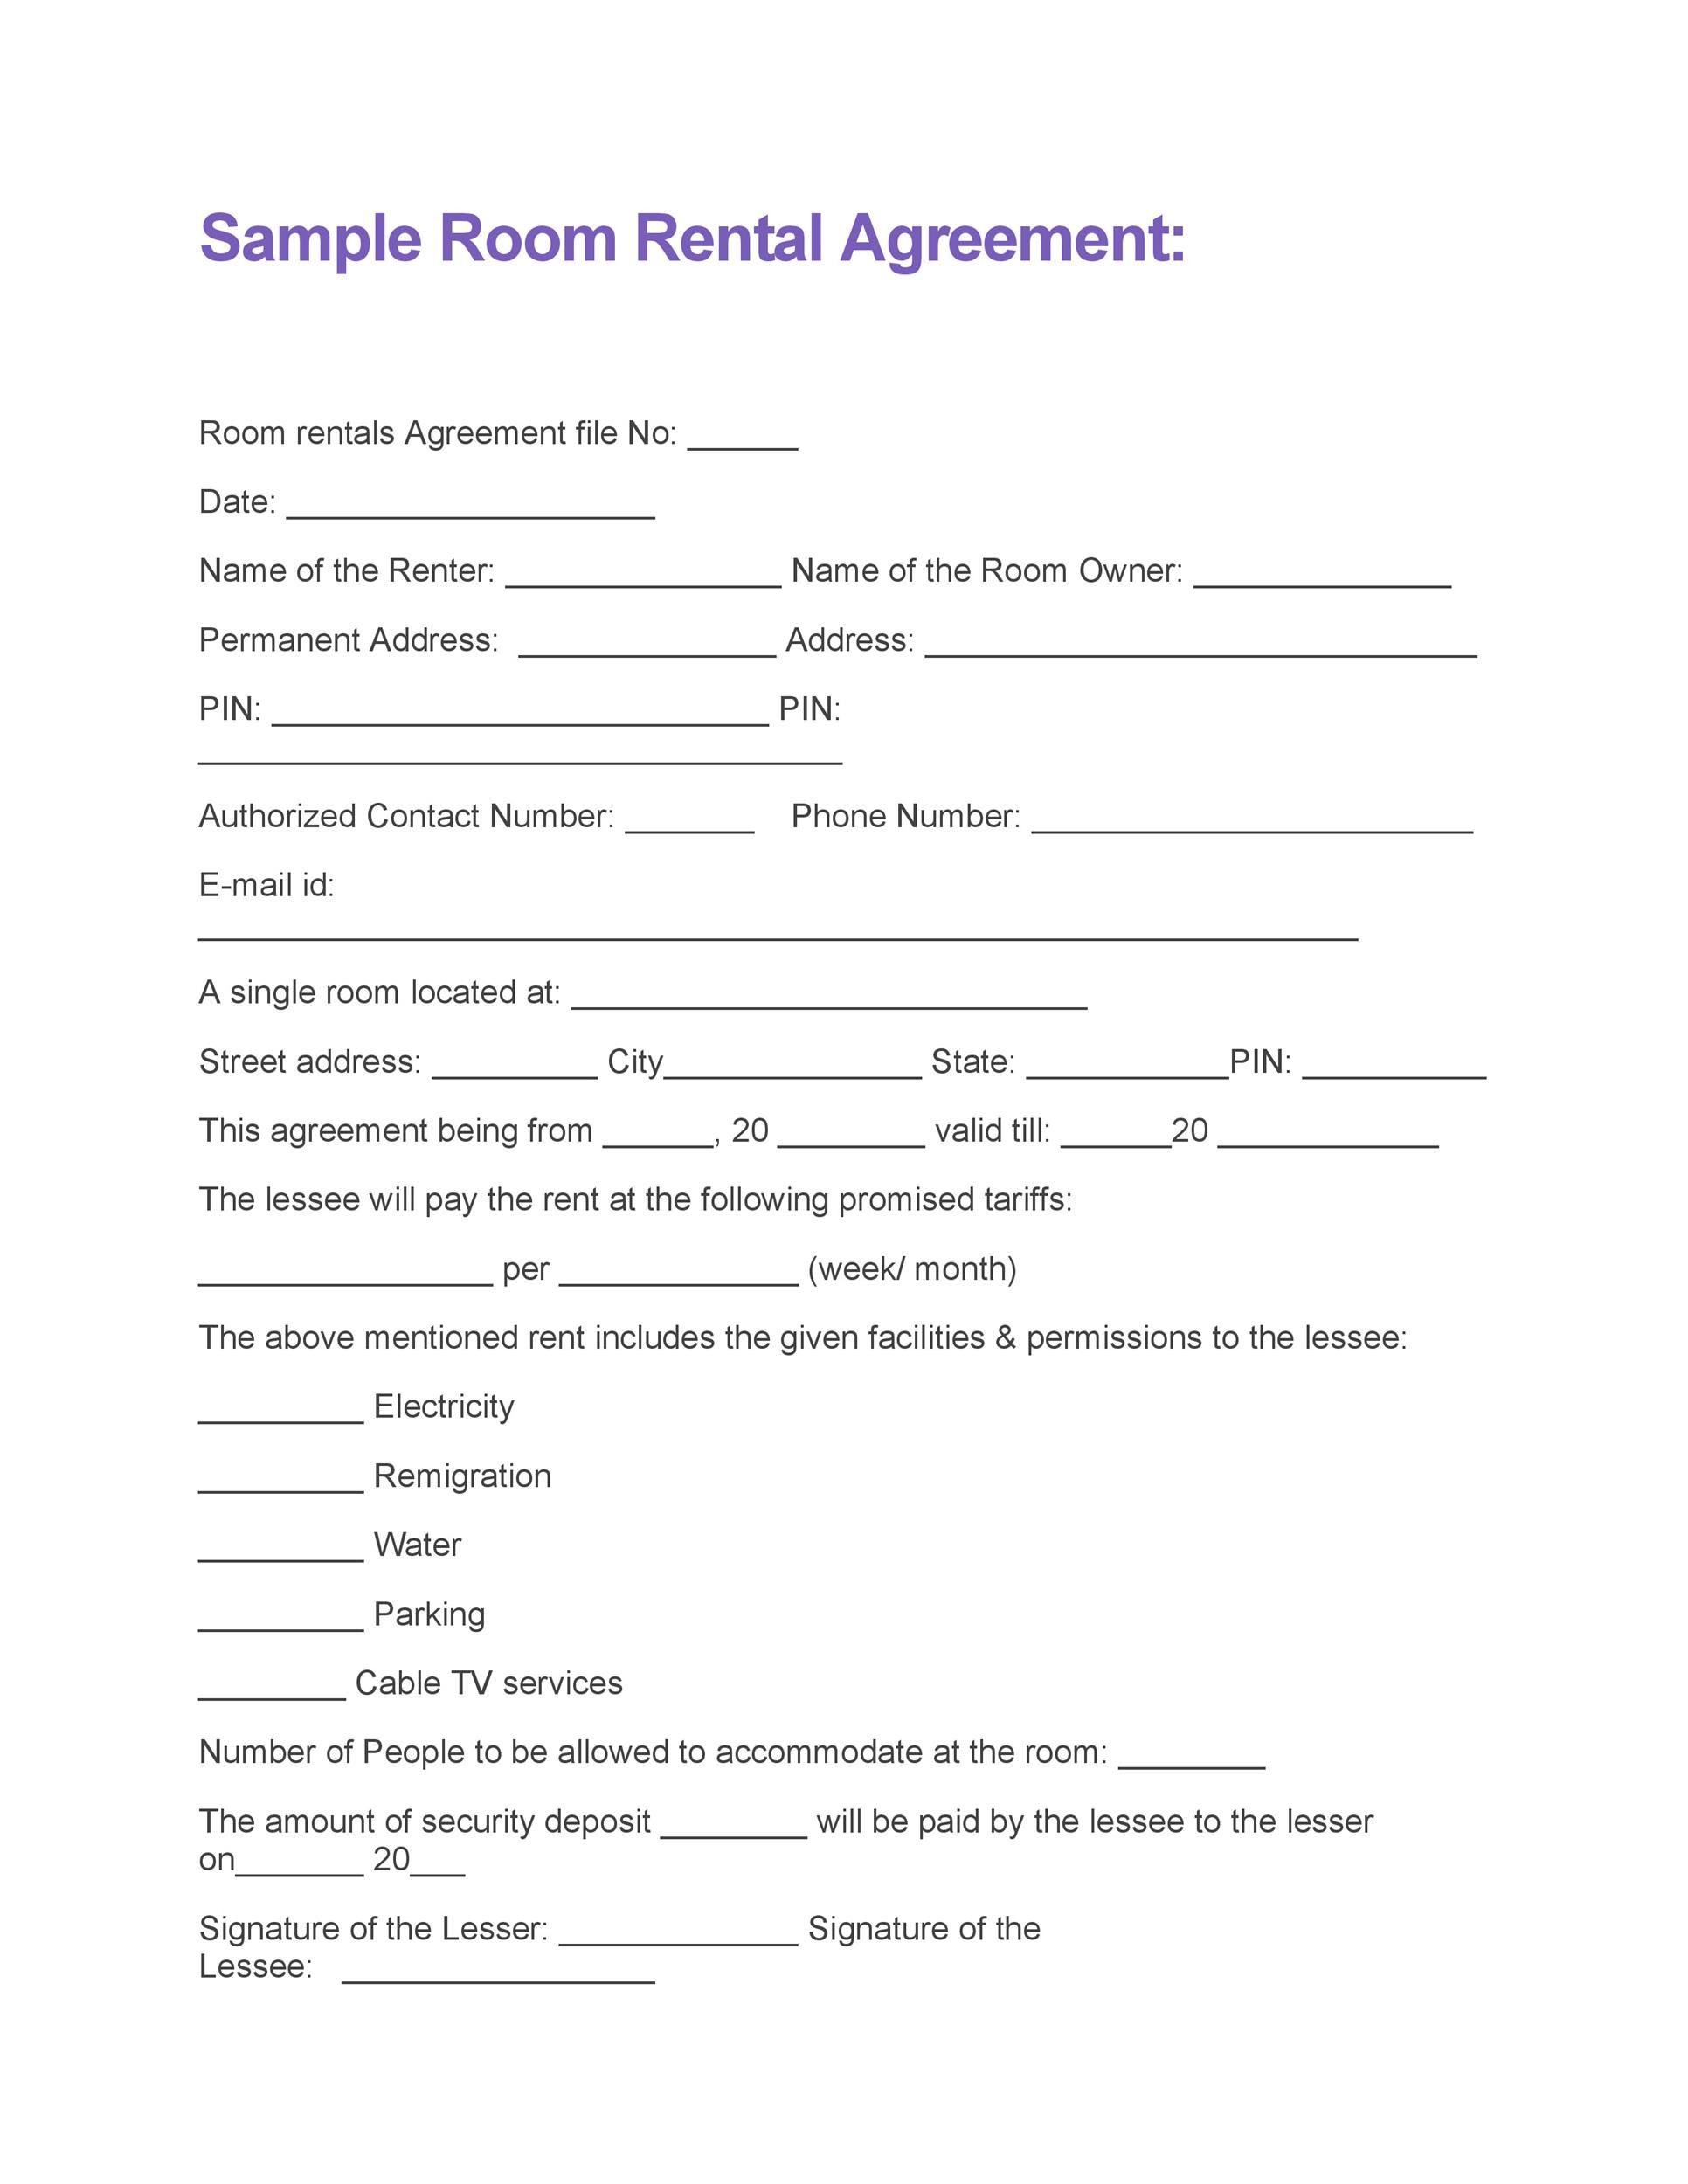 Simple Agreement Form. Free Copy Rental Lease Agreement